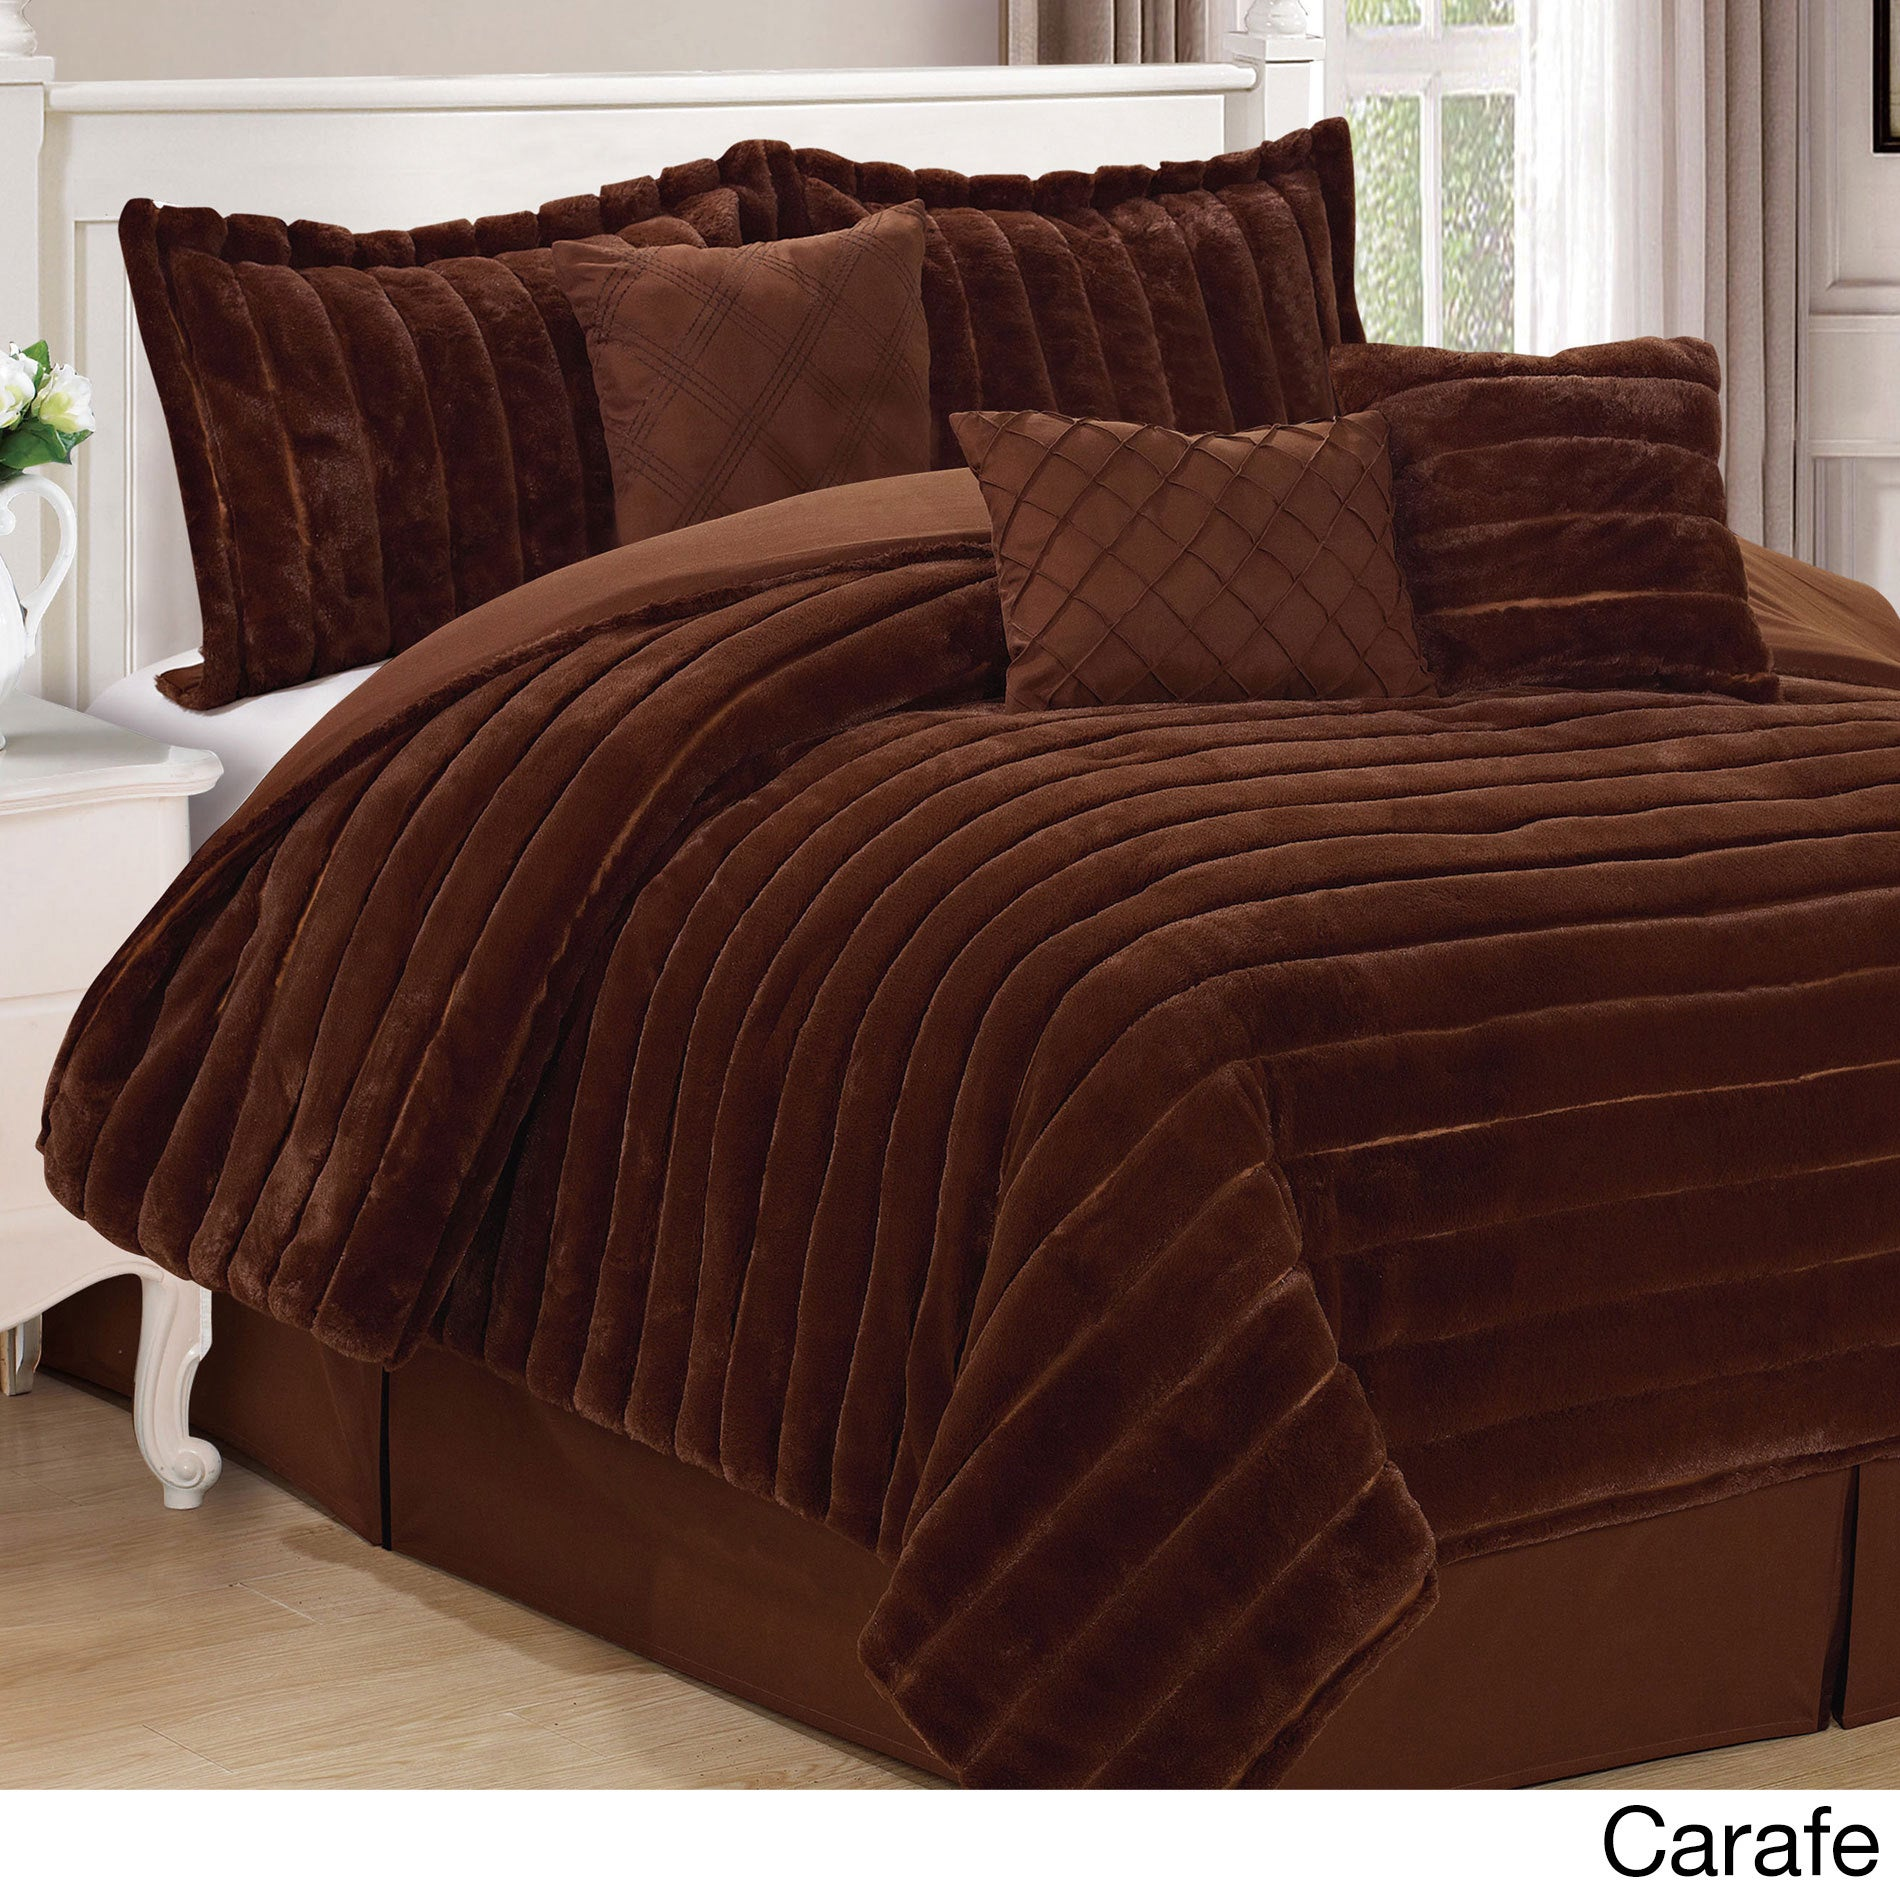 full faux wid comforter p cannon prod hei queen brown qlt fur